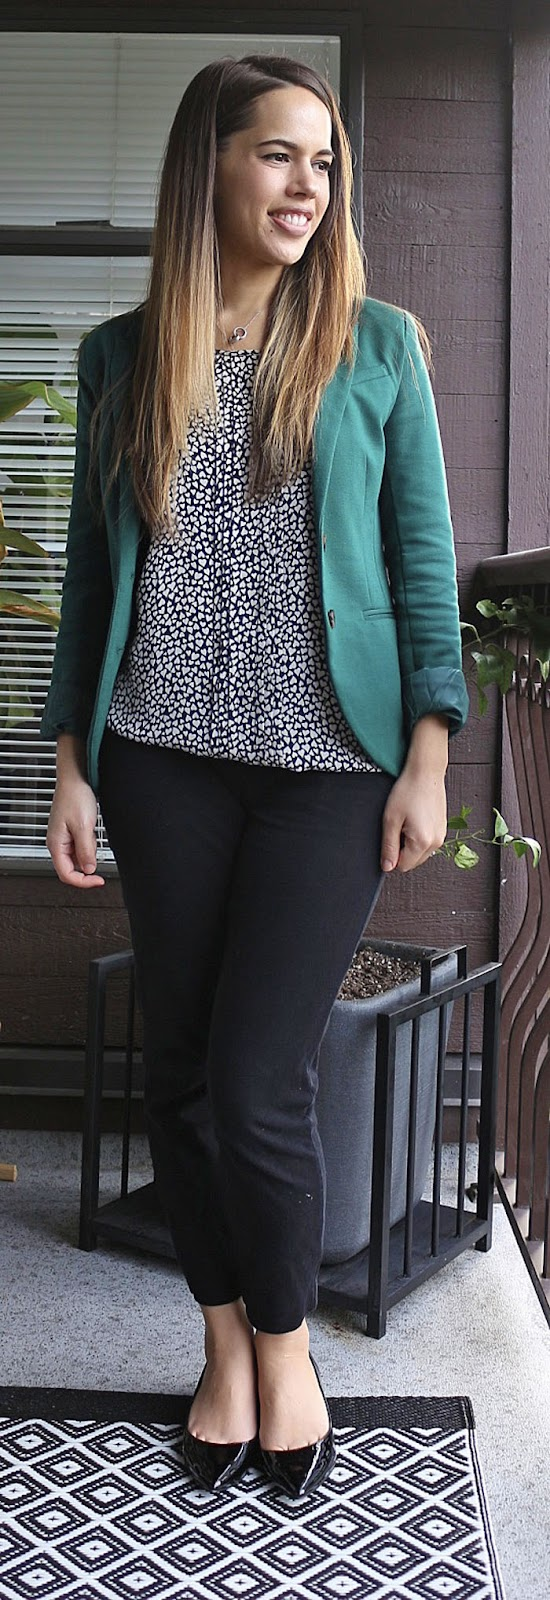 Jules in Flats - H&M Blazer, Smart Set Blouse, Old Navy Pixie Pants, Aldo Deloris Heels